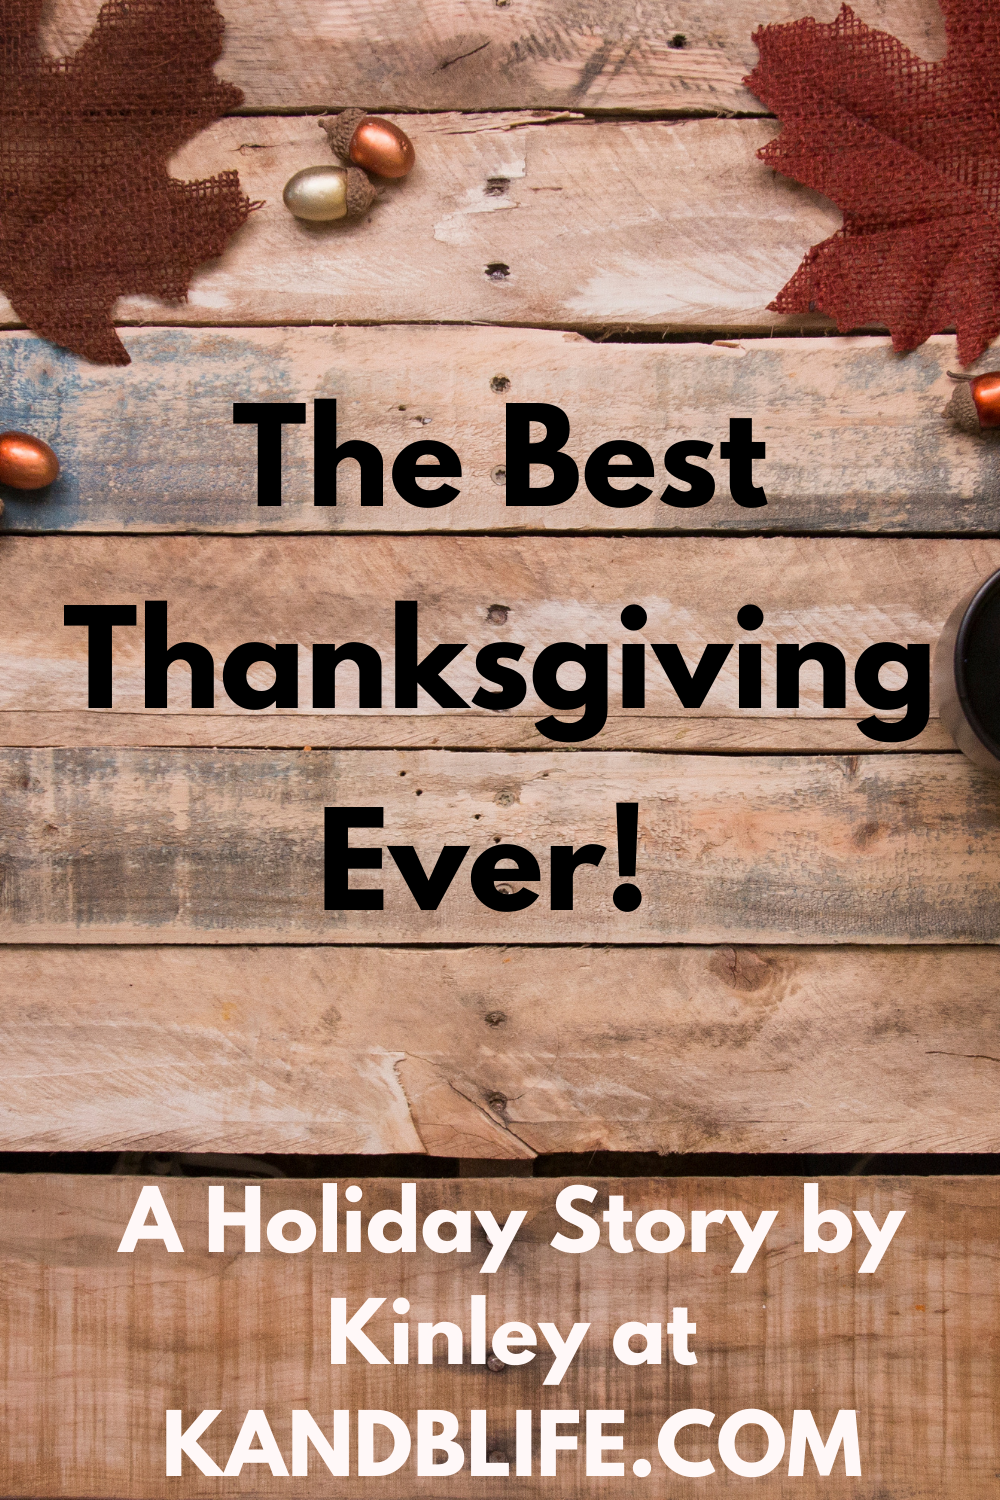 A Holiday Story called The Best Thanksgiving Ever!